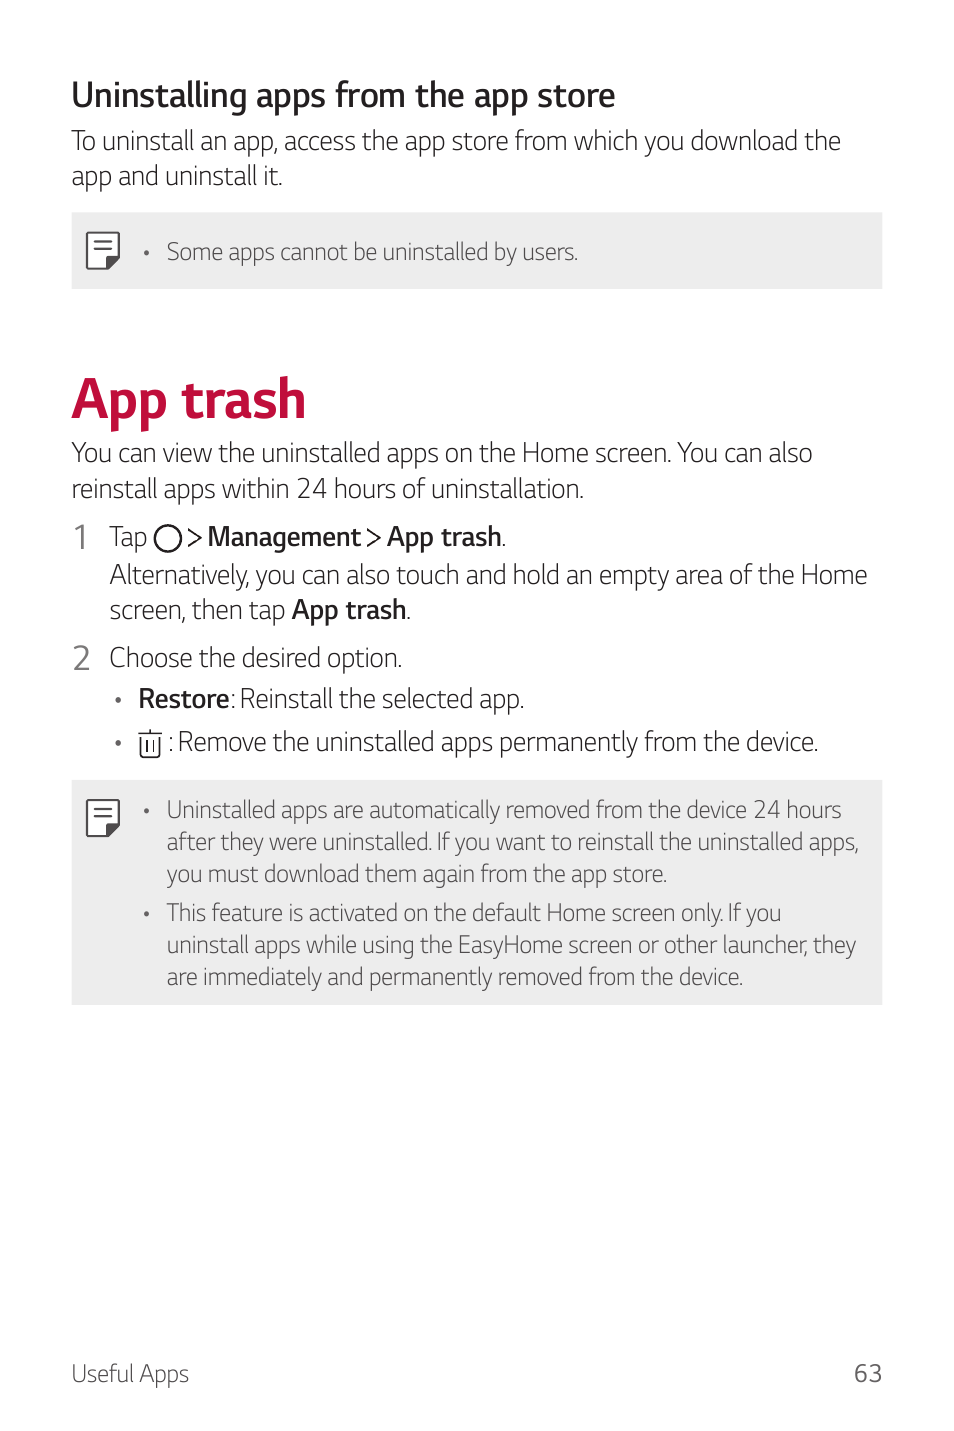 App trash, For details, Uninstalling apps from the app store | LG G6